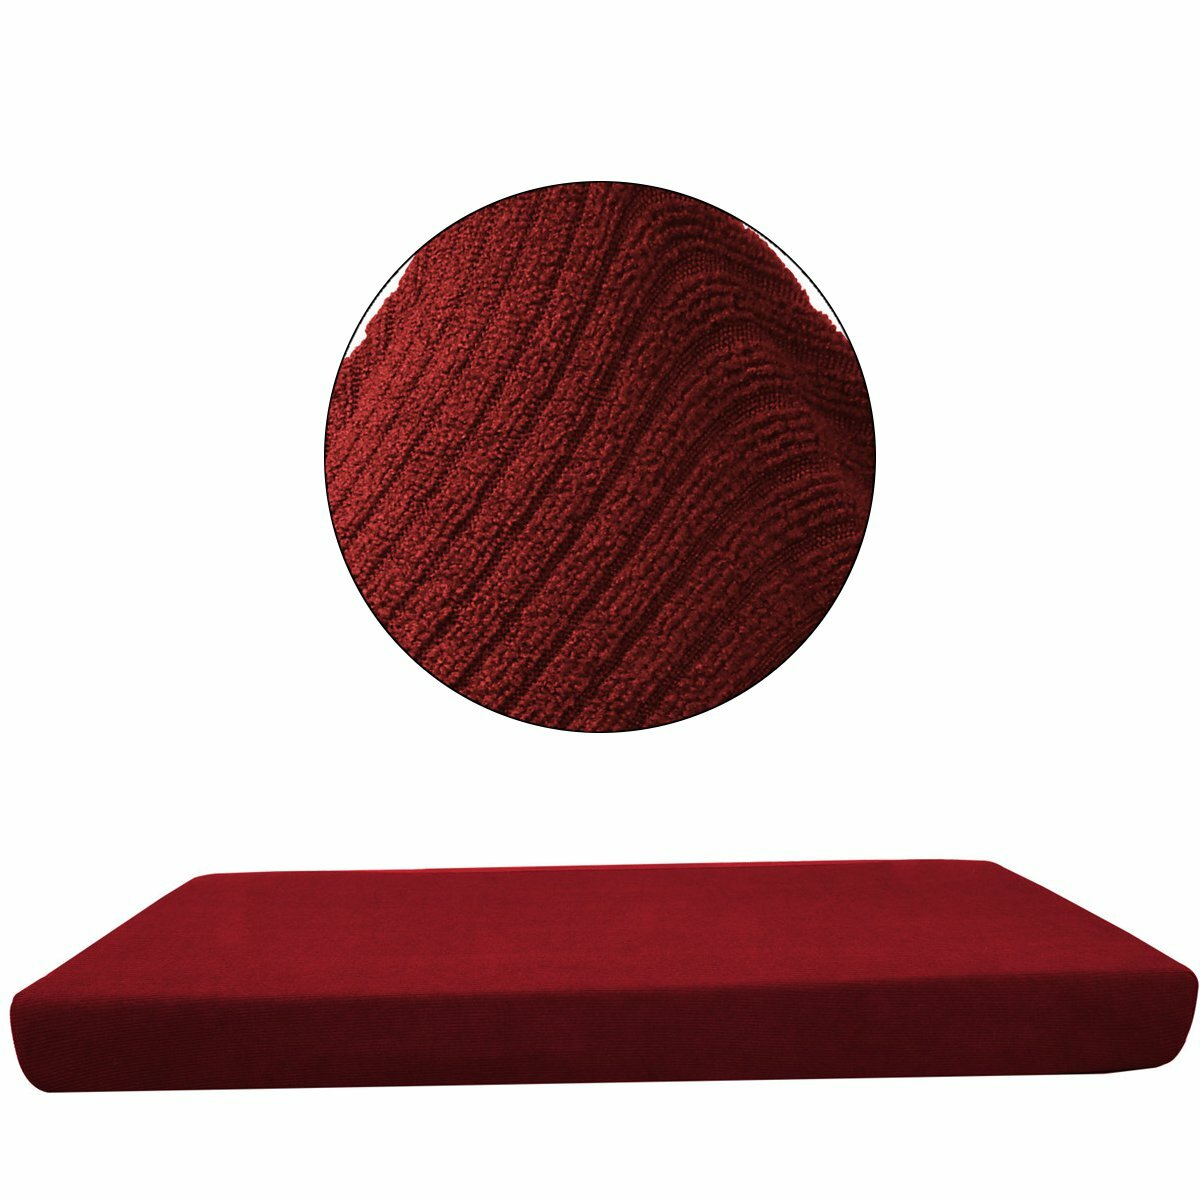 Enjoyable Replacement Sofa Seat Cushion Cover Couch Slip Covers Chair Protector Fabric Stretchy Three Seater Caraccident5 Cool Chair Designs And Ideas Caraccident5Info